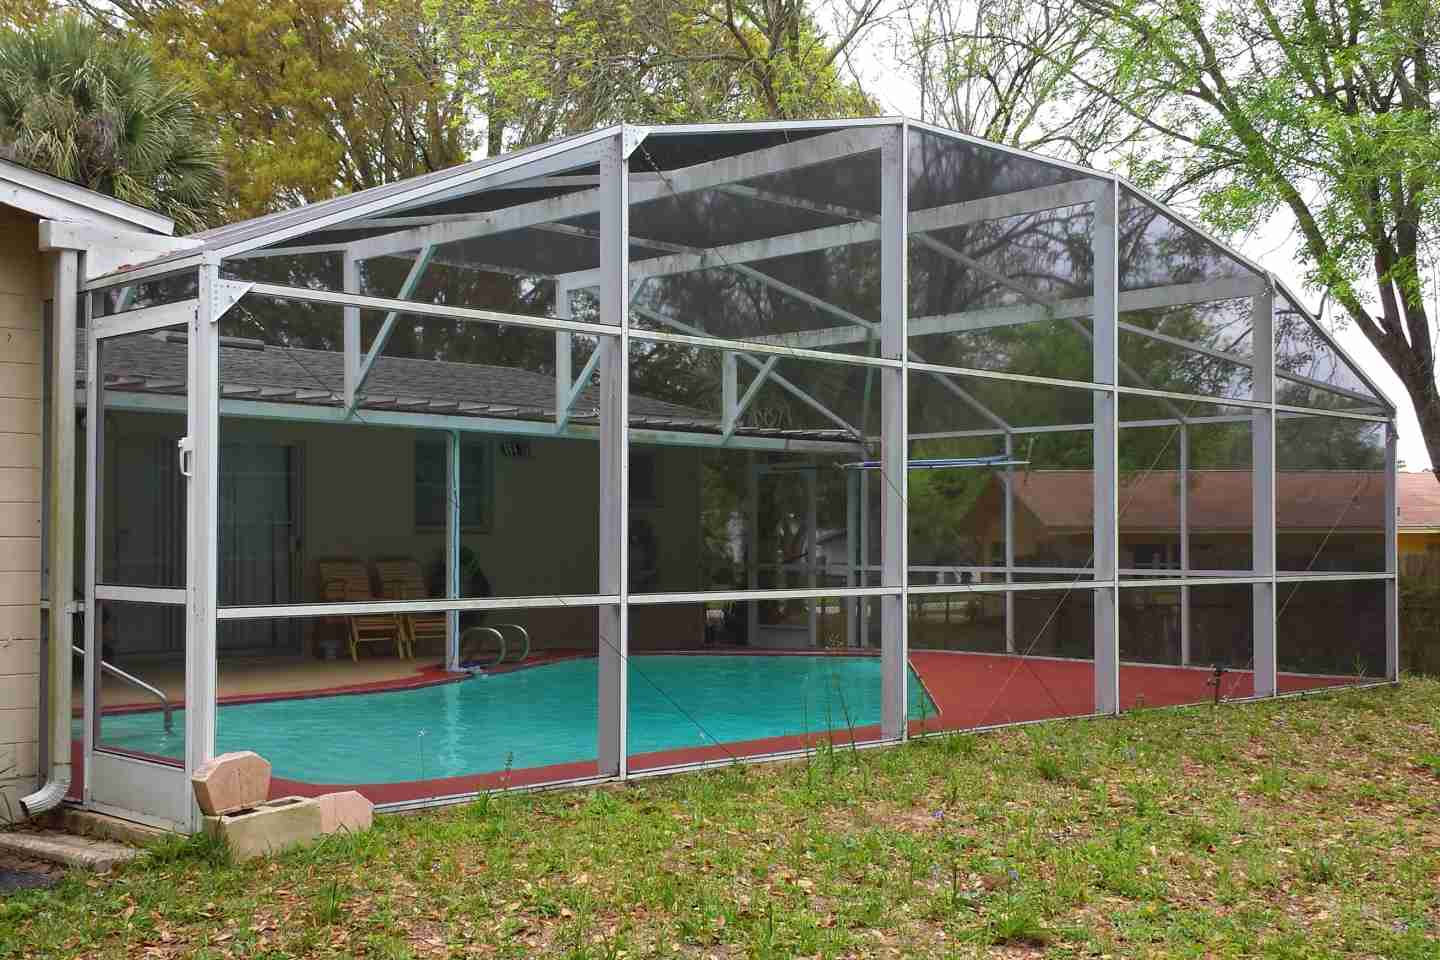 01-before-pressure-clean-pool-enclosure.jpg